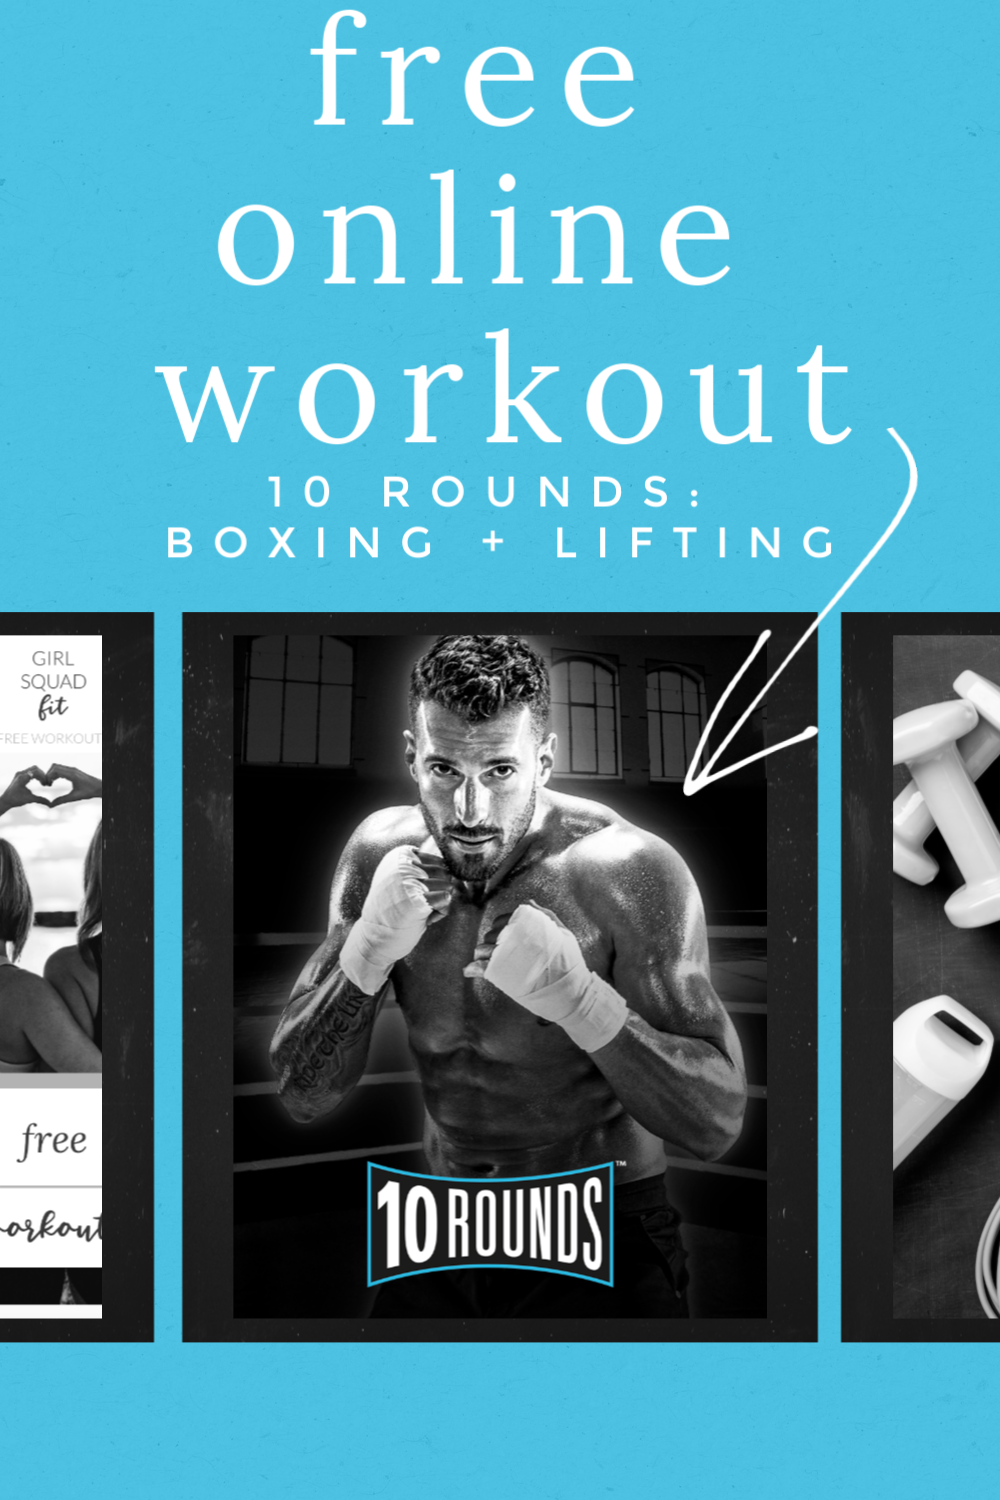 10 Rounds A Boxing And Lifting Online Home Workout Program Girl Squad Fit